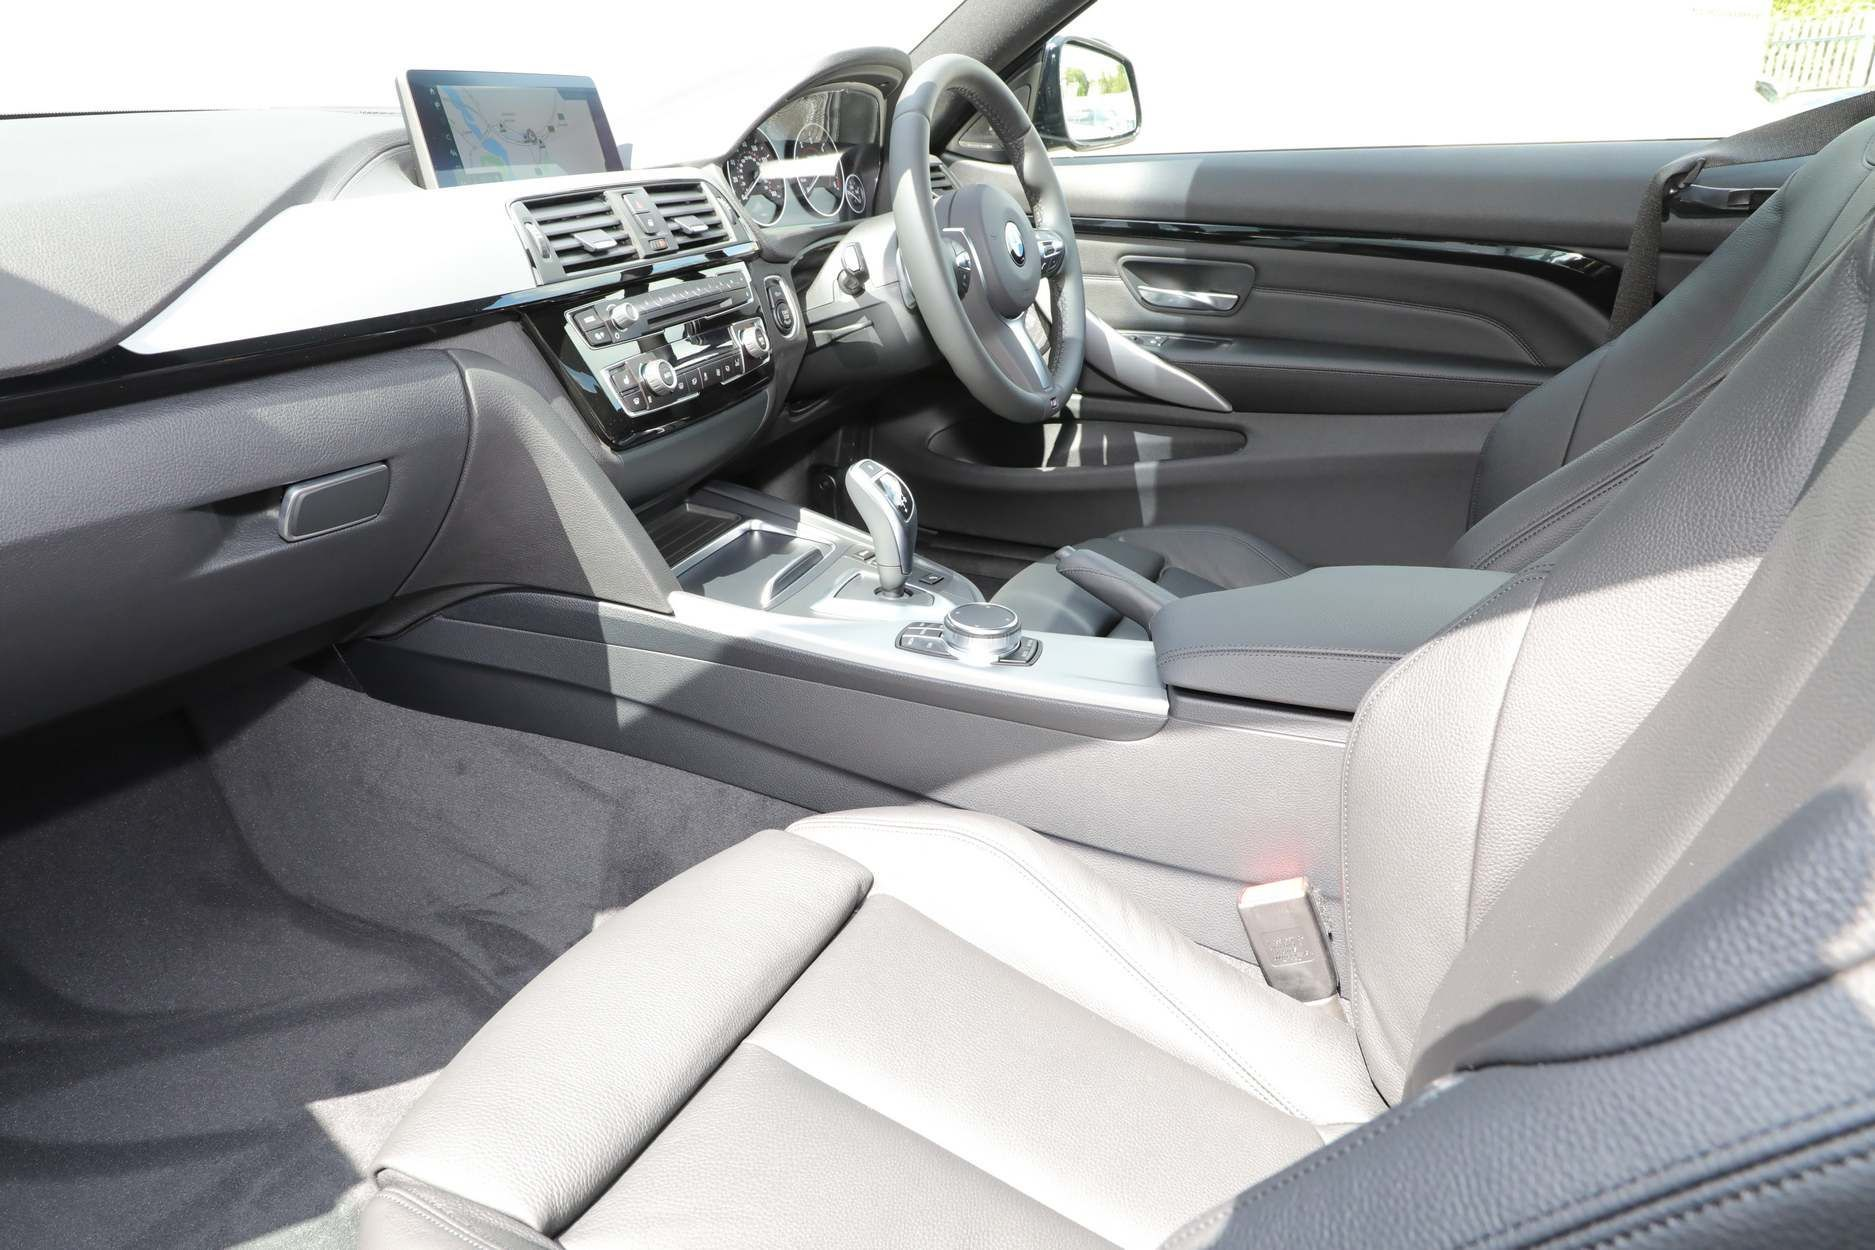 Image 3 - BMW 435d xDrive M Sport Coupe (CW19AEE)